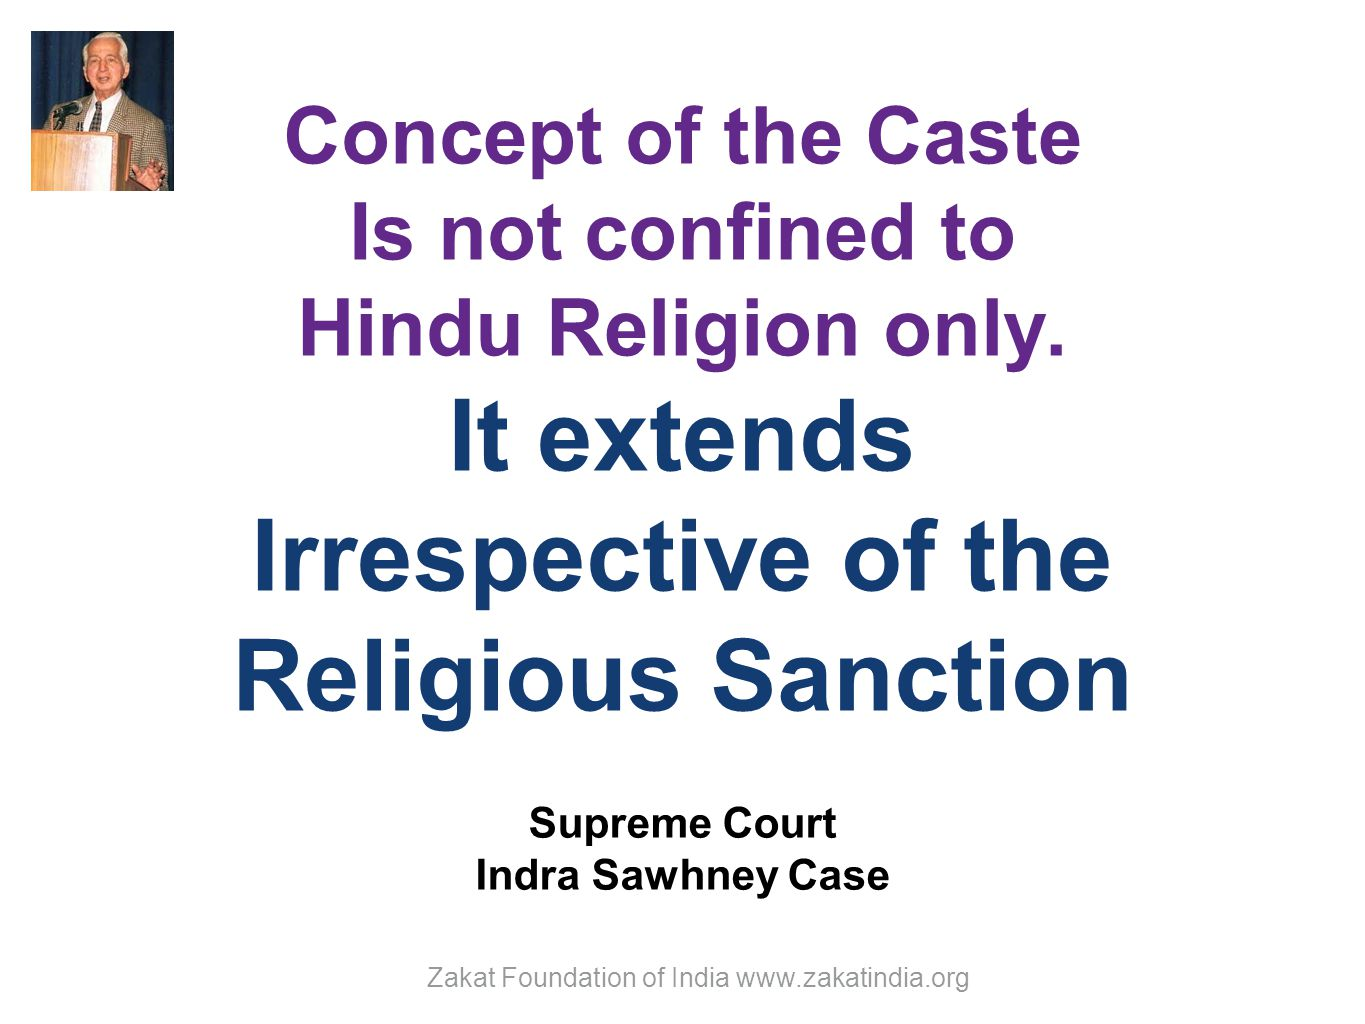 Concept of the Caste Is not confined to Hindu Religion only.